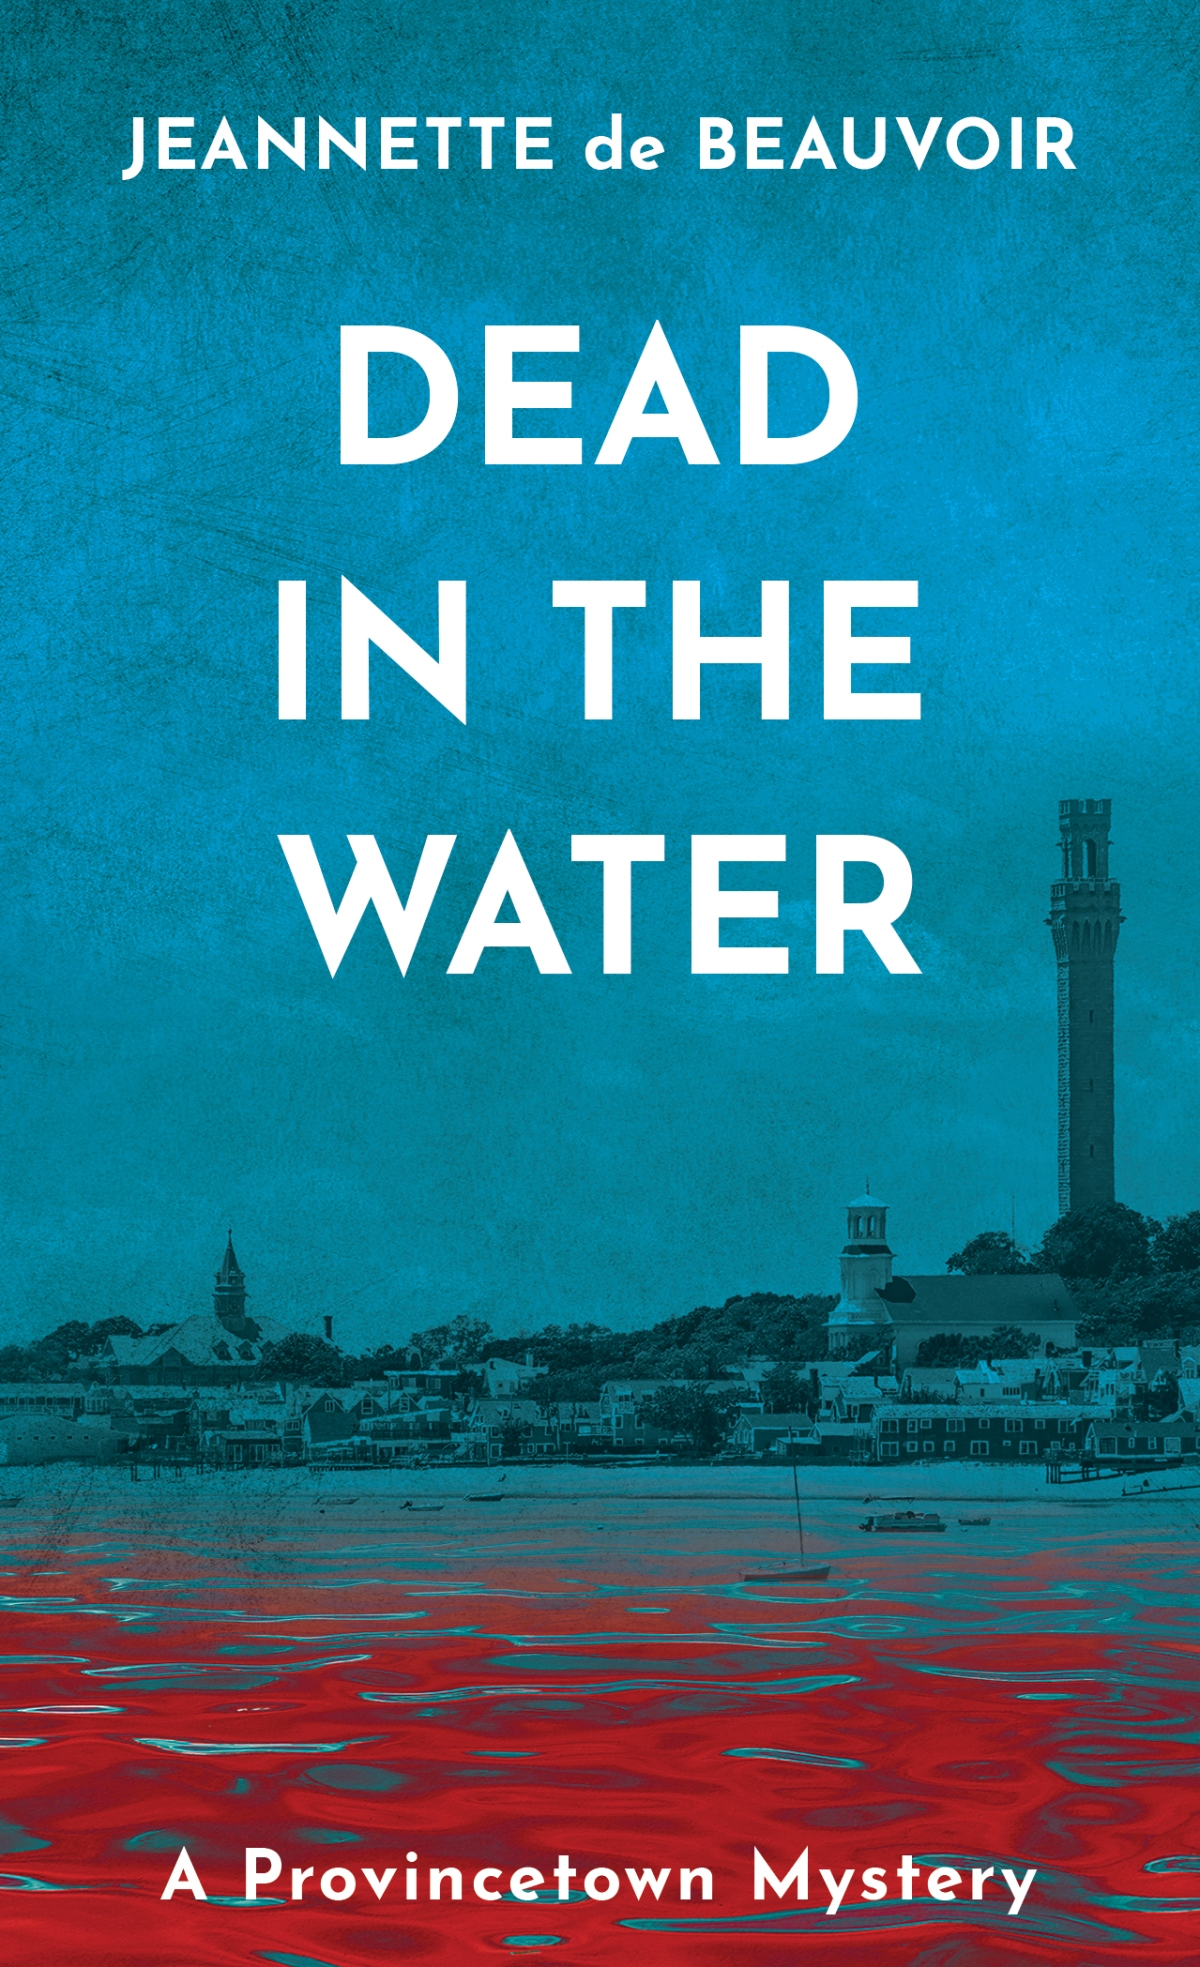 Book Blast: DEAD IN THE WATER by Jeannette de Beauvoir